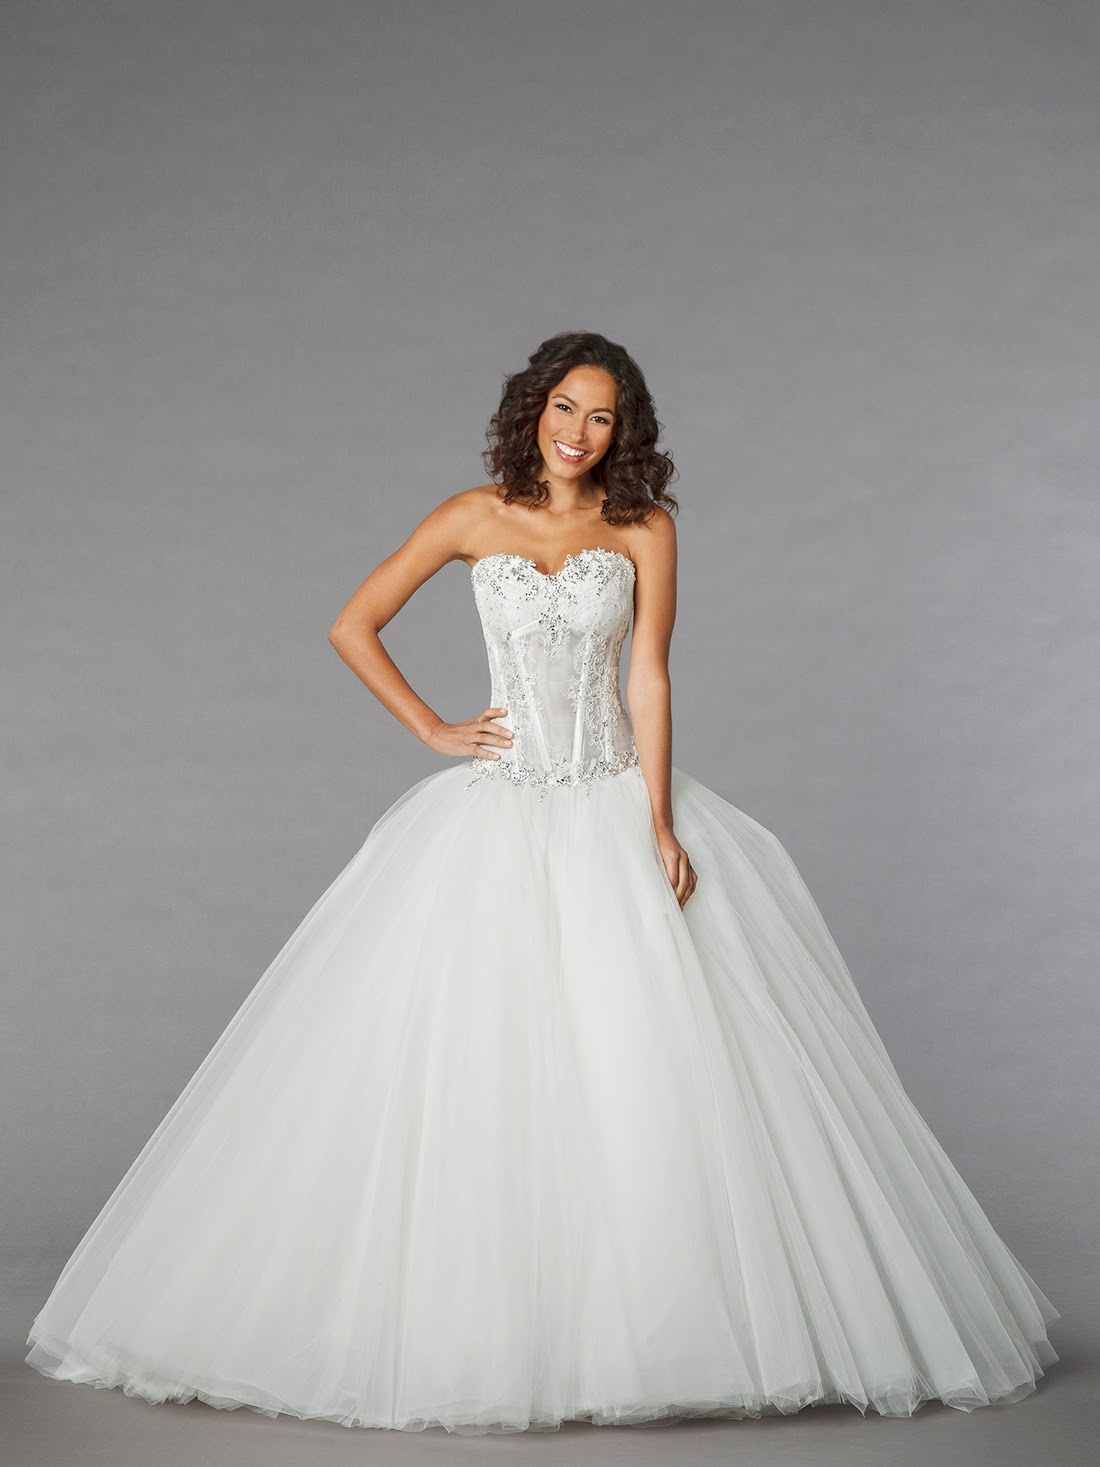 Wedding Dresses Kleinfeld Atlanta : Pnina tornai for kleinfeld bridal gowns